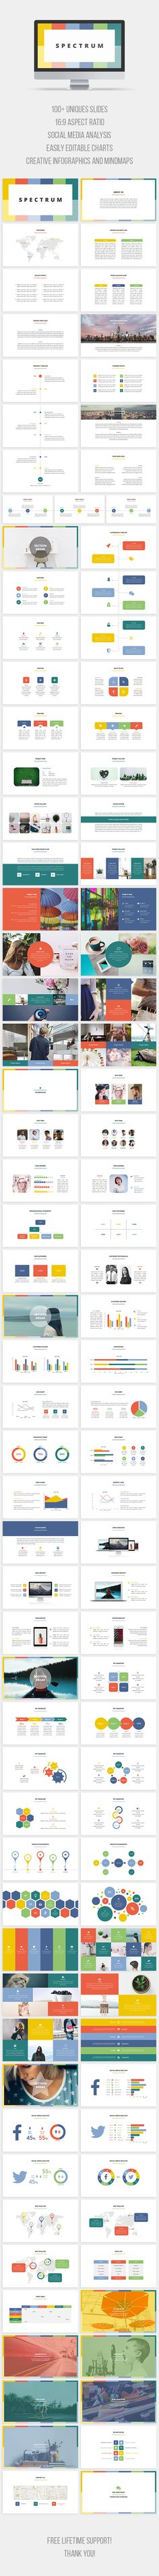 Spectrum PowerPoint Template. Download here: https://graphicriver.net/item/spectrum-powerpoint-template/17218477?ref=ksioks